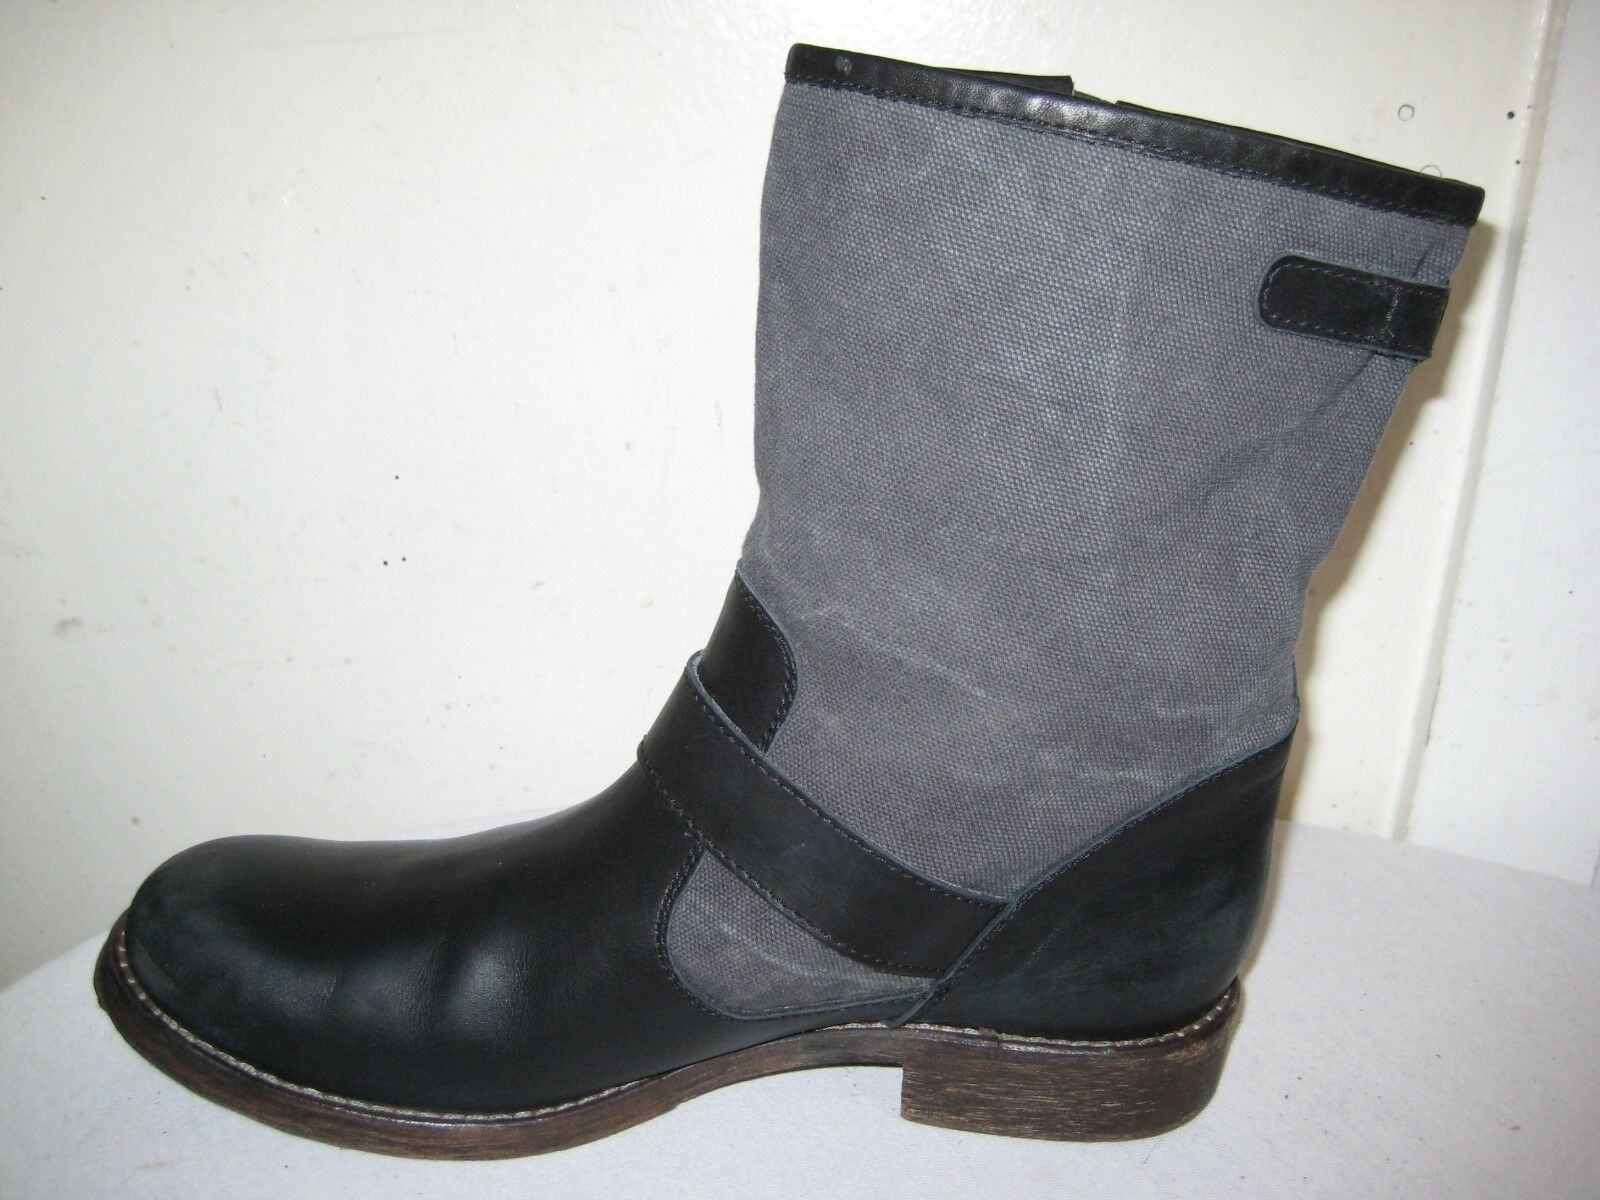 Via Roma 15 Buckle Buckle Buckle Ankle Boots shoes Women's Size 40   9.5 Made In ITALY. b8db69